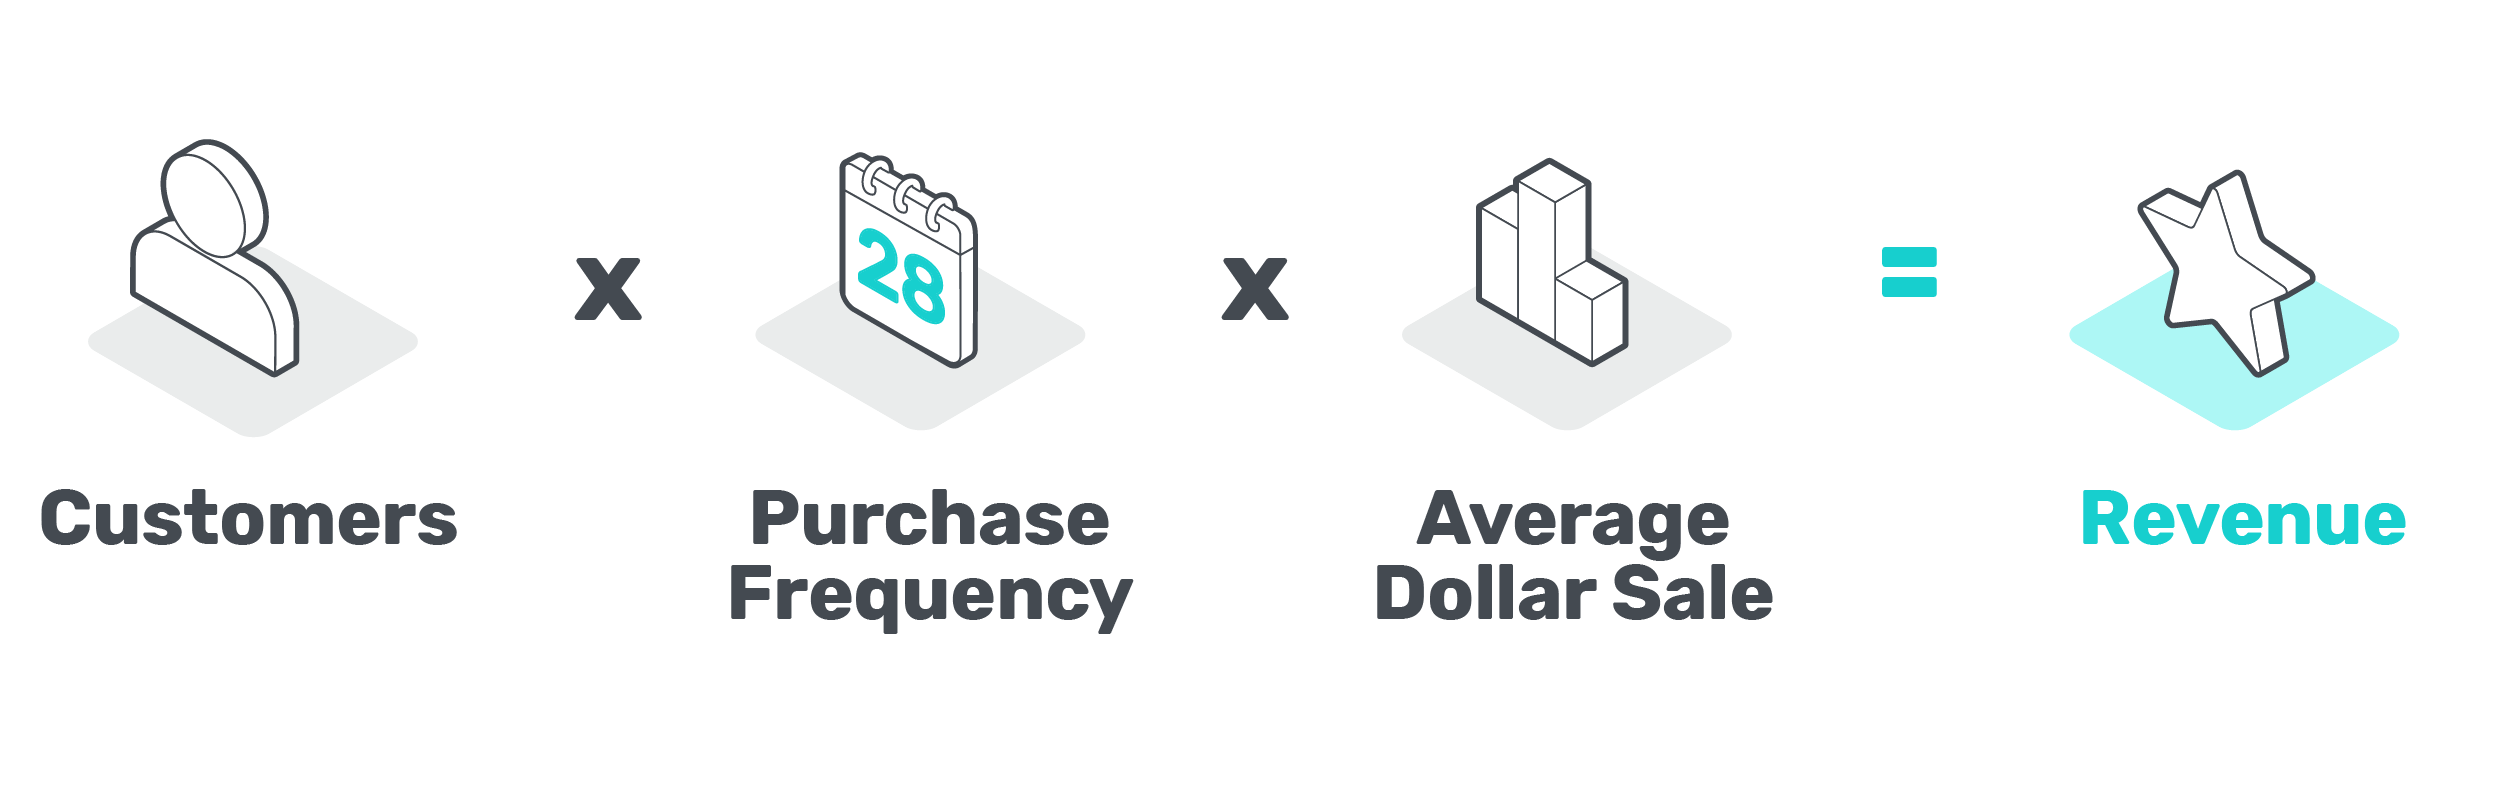 Customers x purchase frequency x average dollar sale = revenue